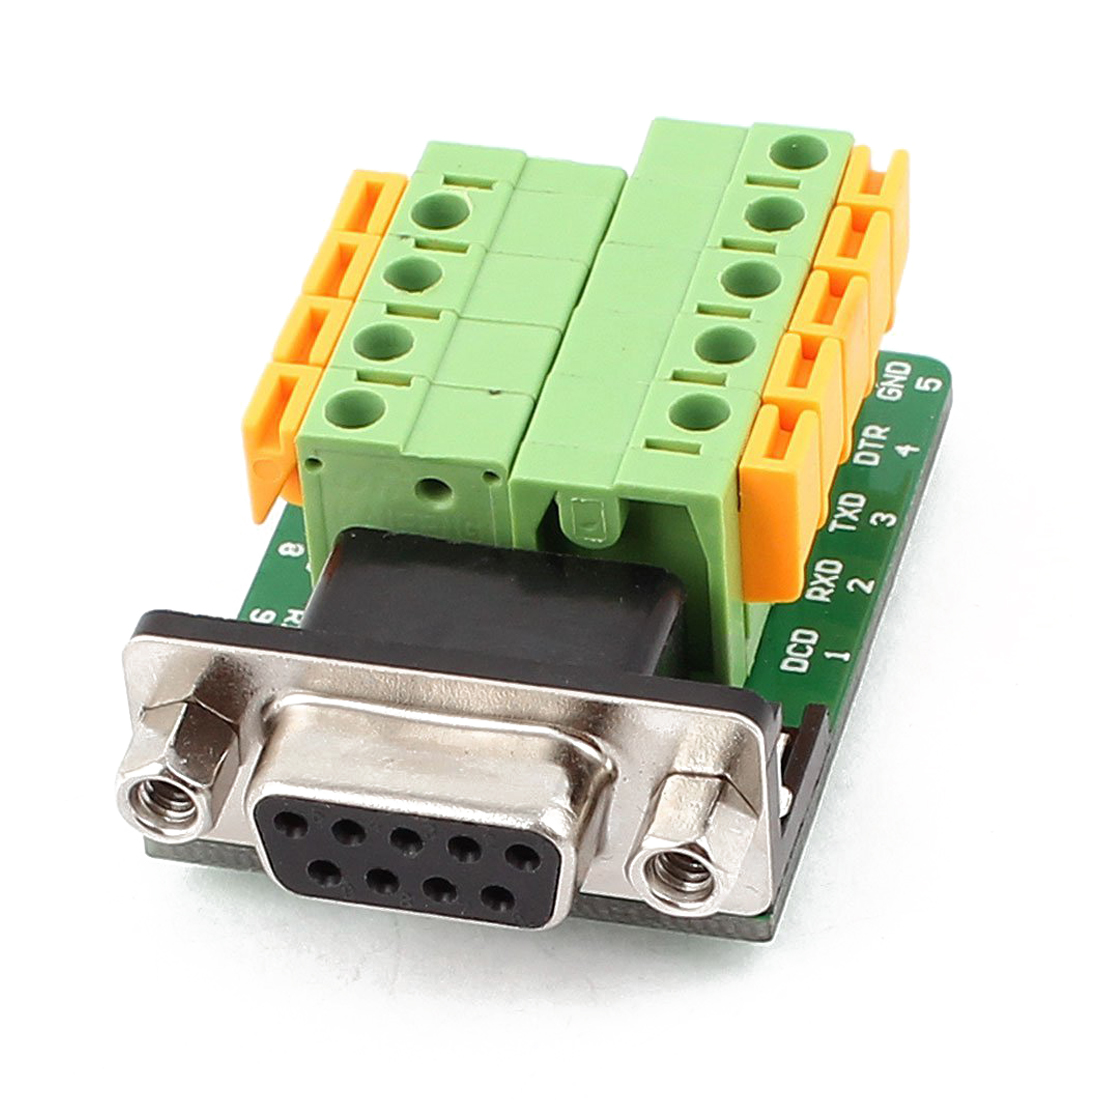 uxcell 20 Pcs DB9 RS232 Serial 9 Pin Male Connector Adapter